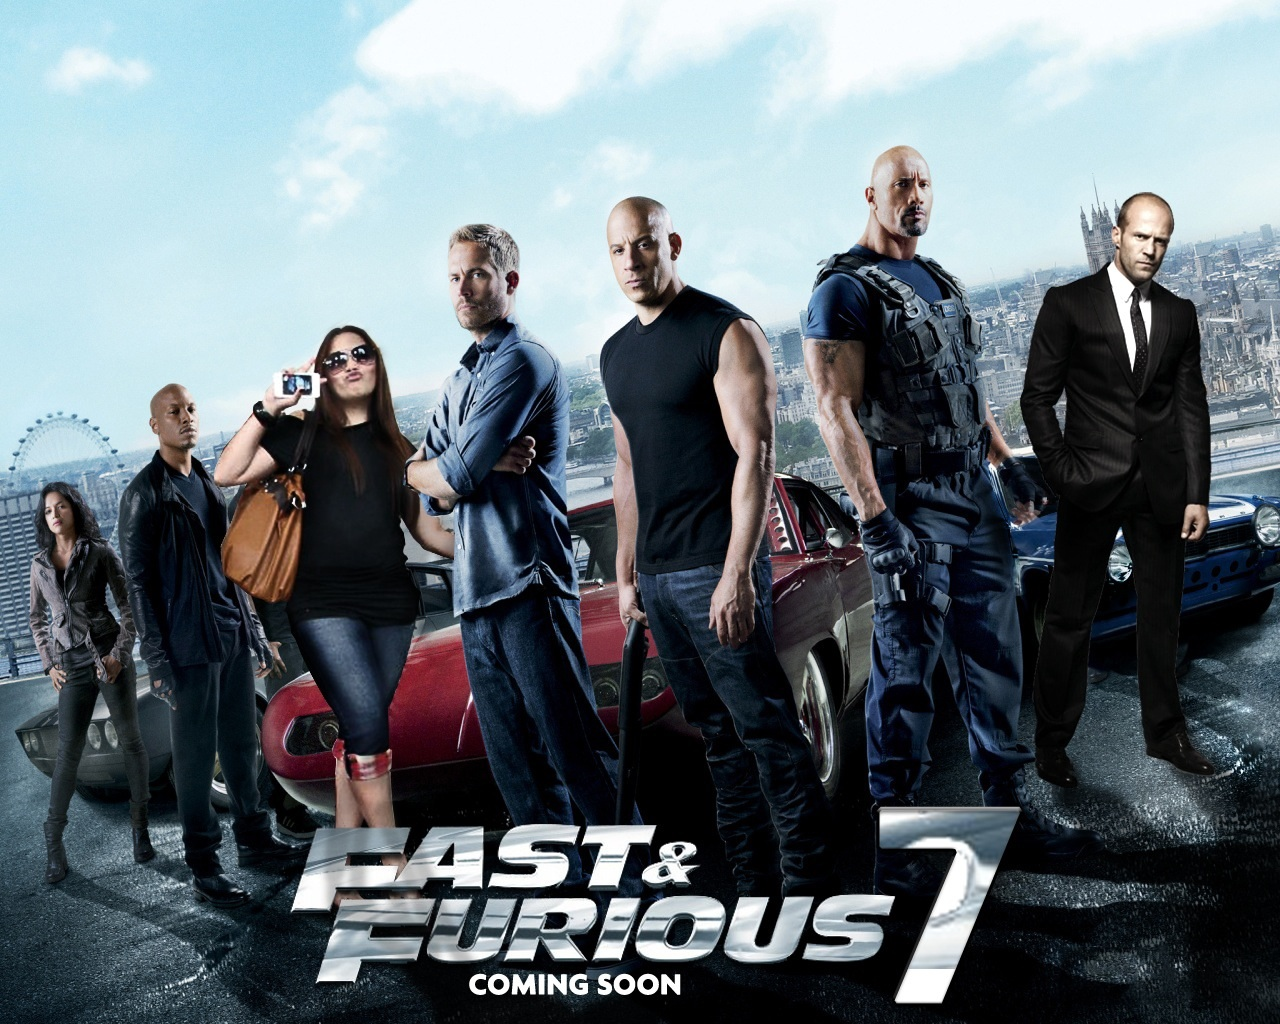 Box Office Wrap Up: Furious 7 Still Chugging